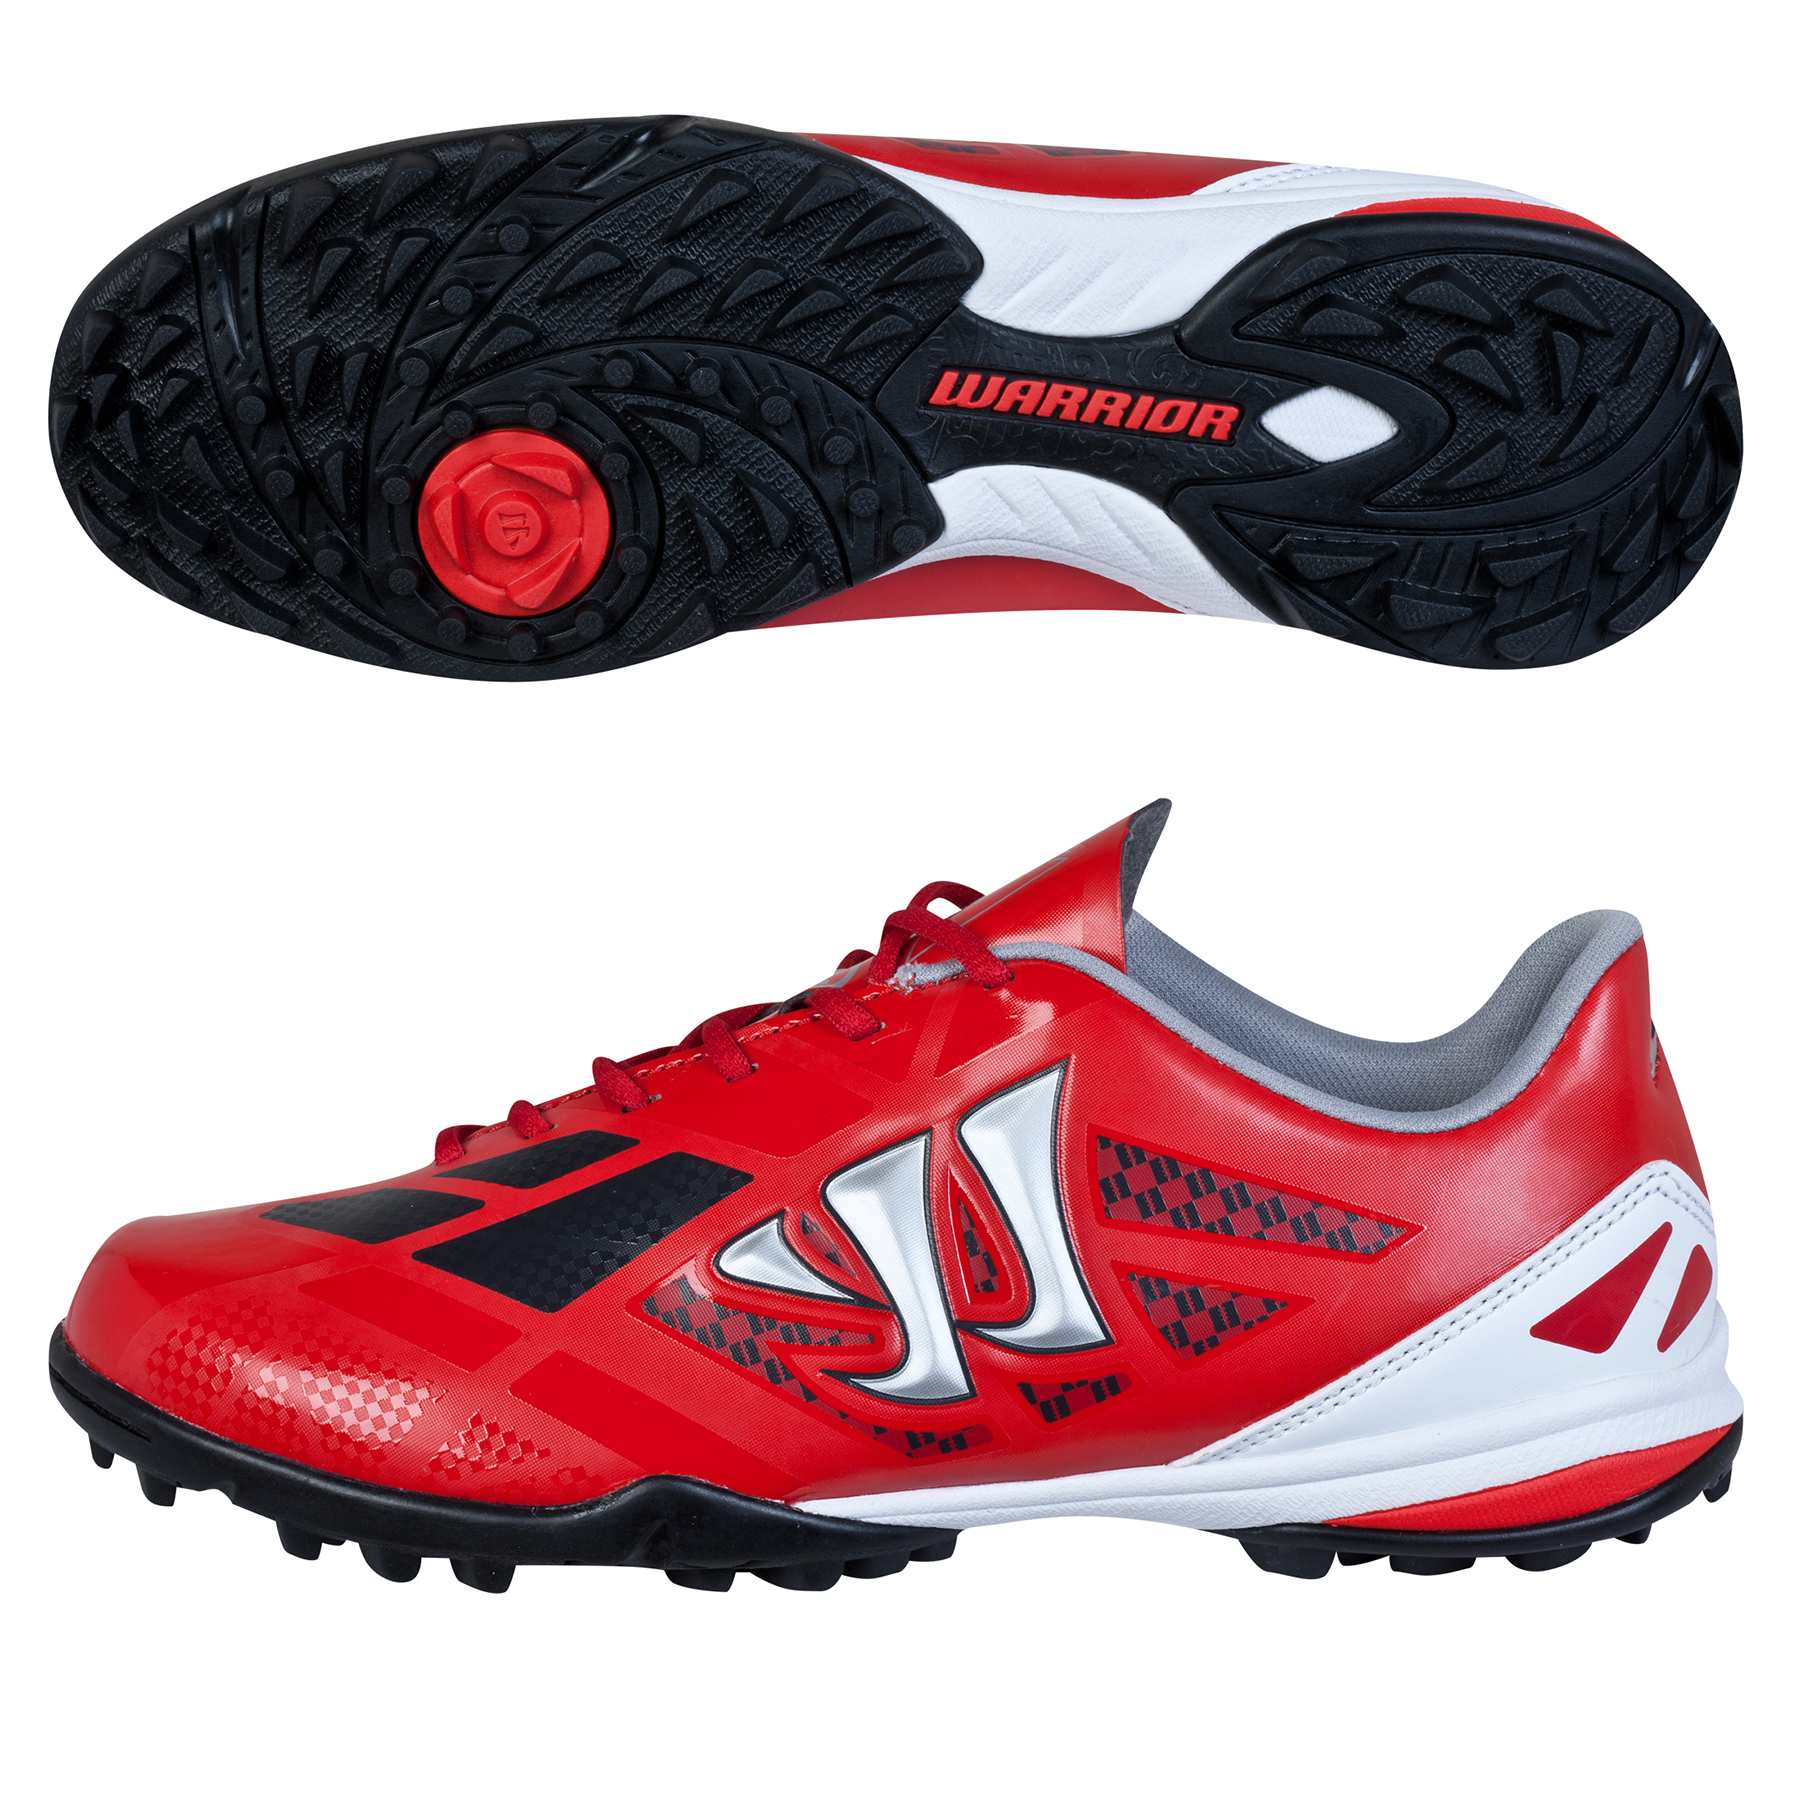 Warrior Gambler II Clash Astroturf - Kids Red